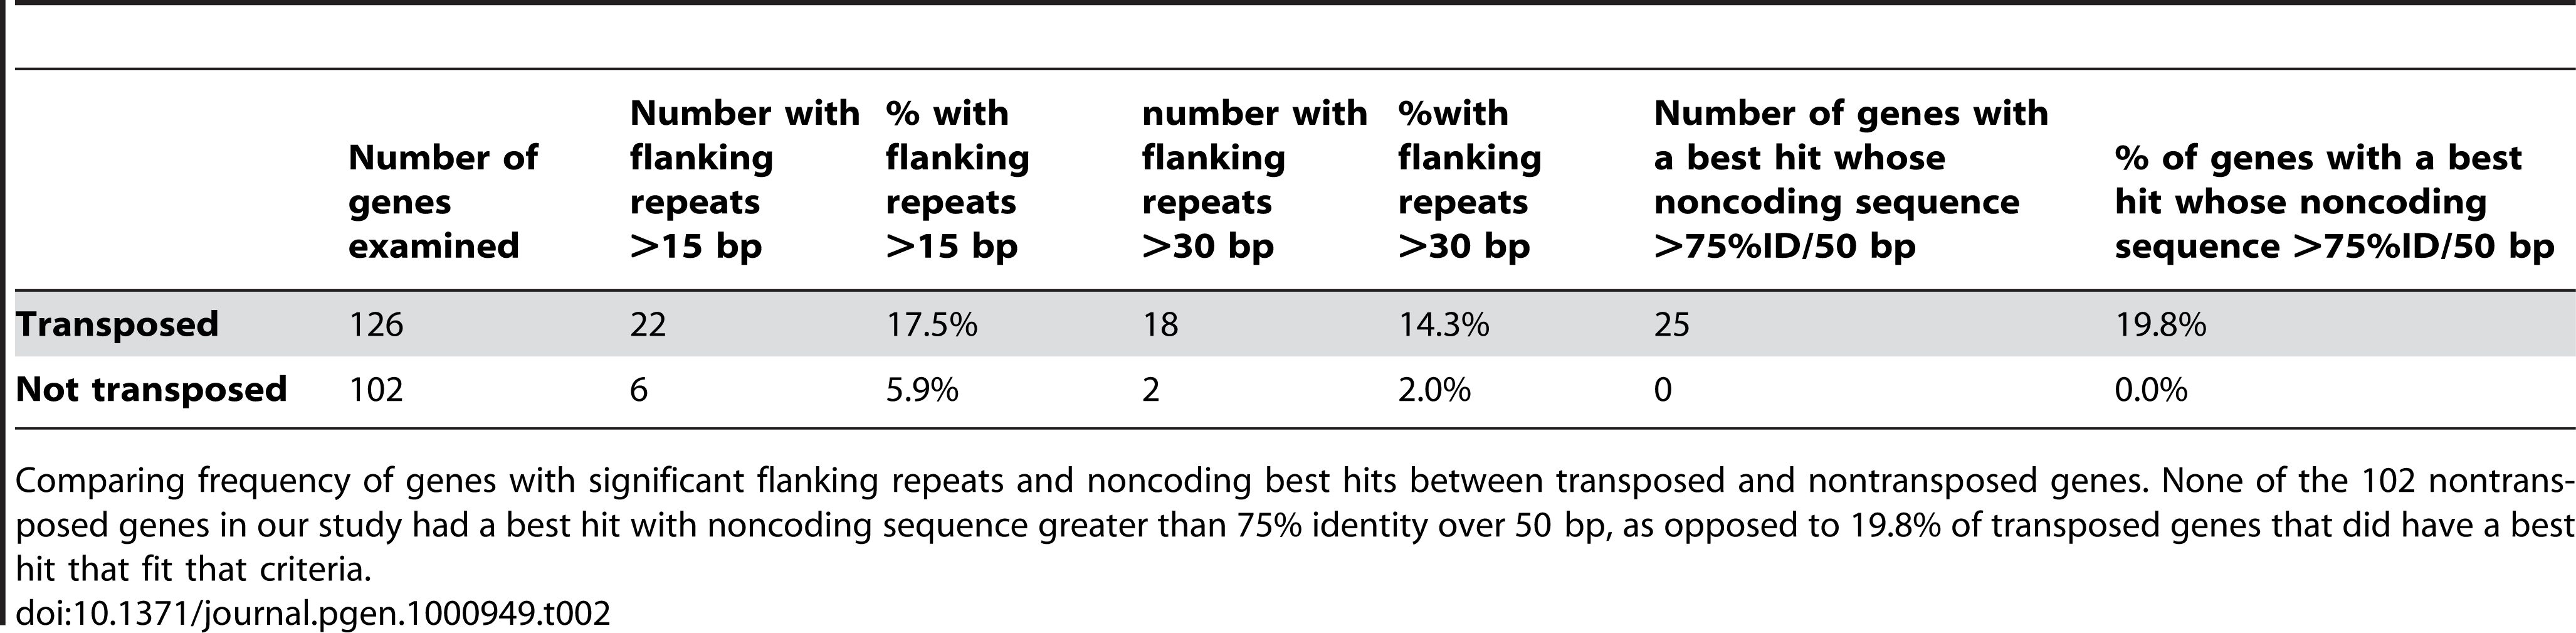 Sequence similarity with best blastn hit and frequency of flanking repeats in transposed versus nontransposed genes.